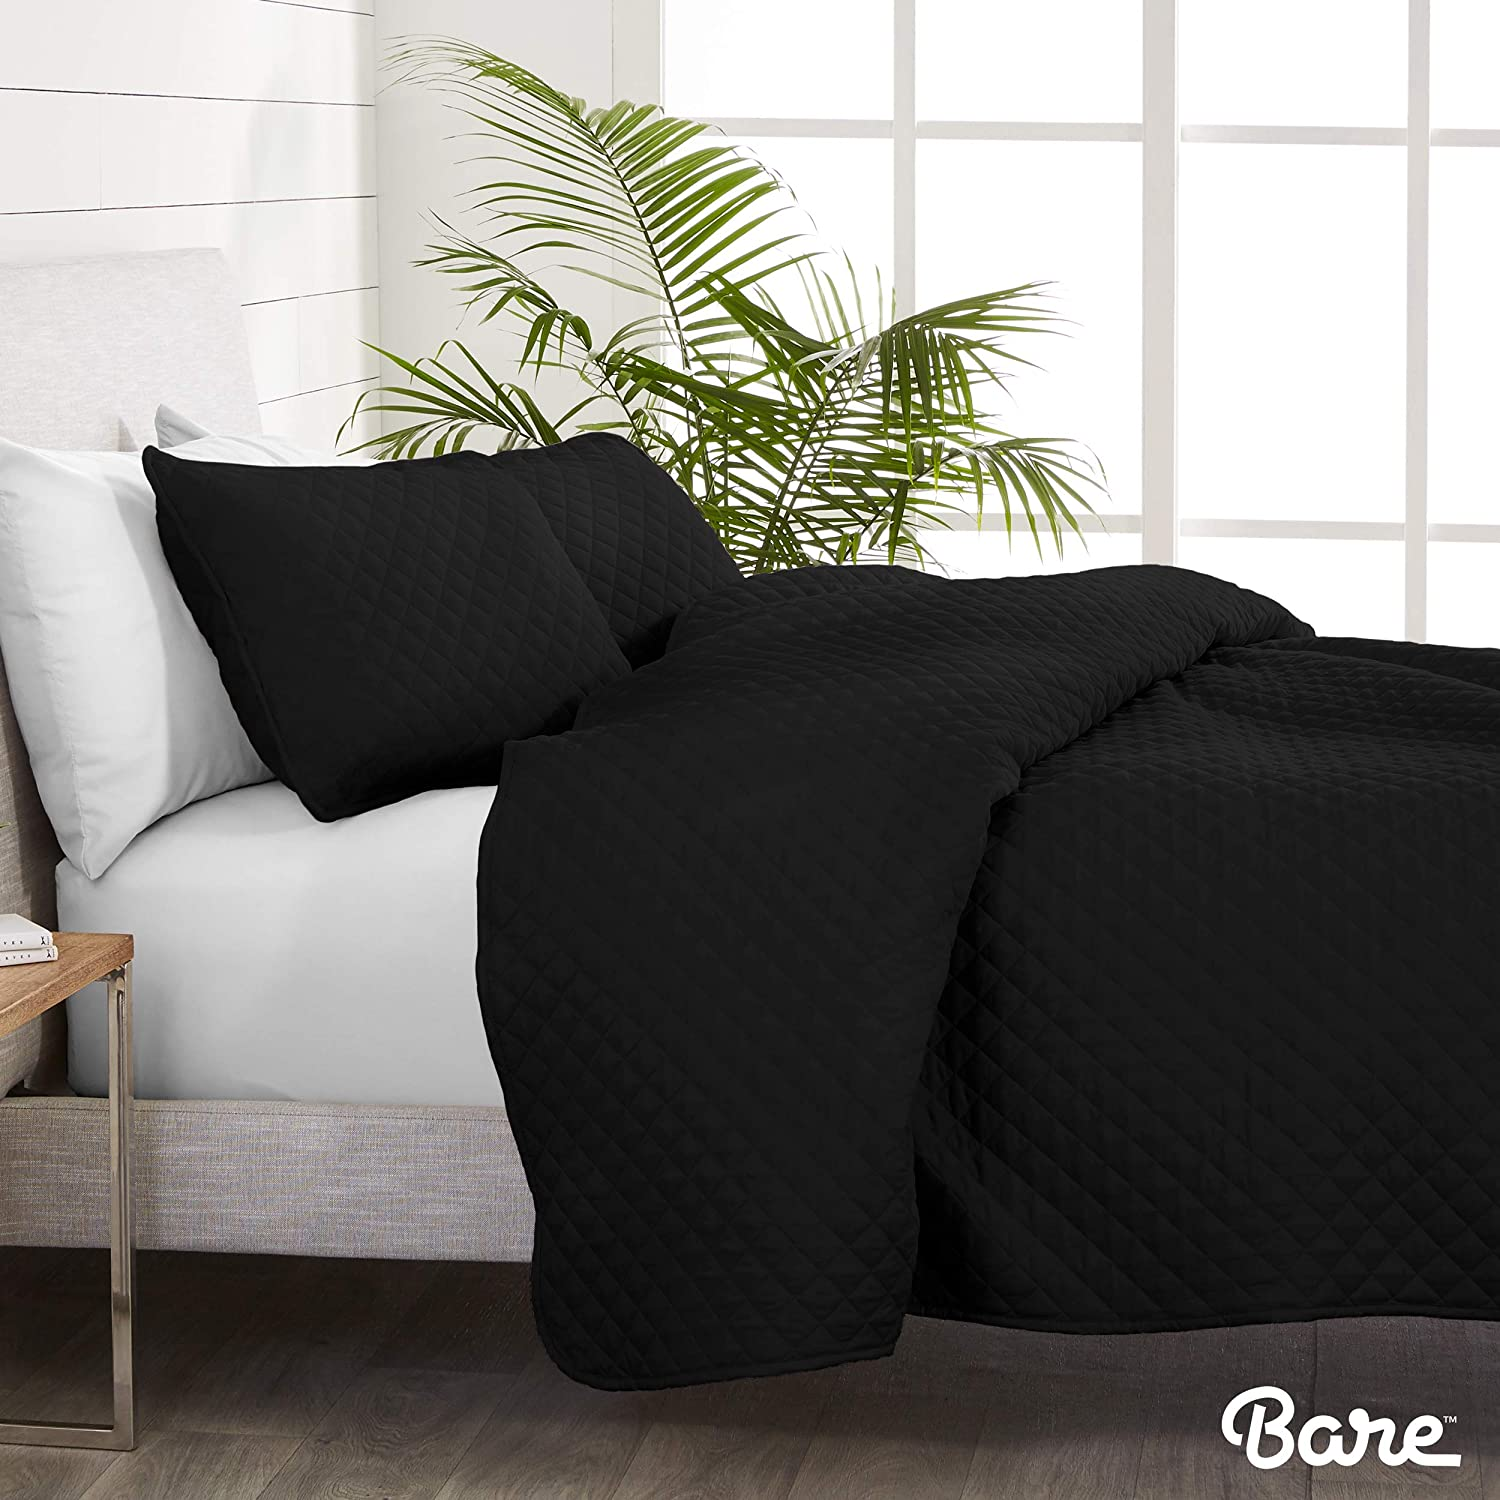 Bare Home Premium 2 Piece Coverlet Set Diamond Stitched Twin//Twin Extra Long Size Twin//Twin XL, Grey Ultra-Soft Luxurious Lightweight All Season Bedspread